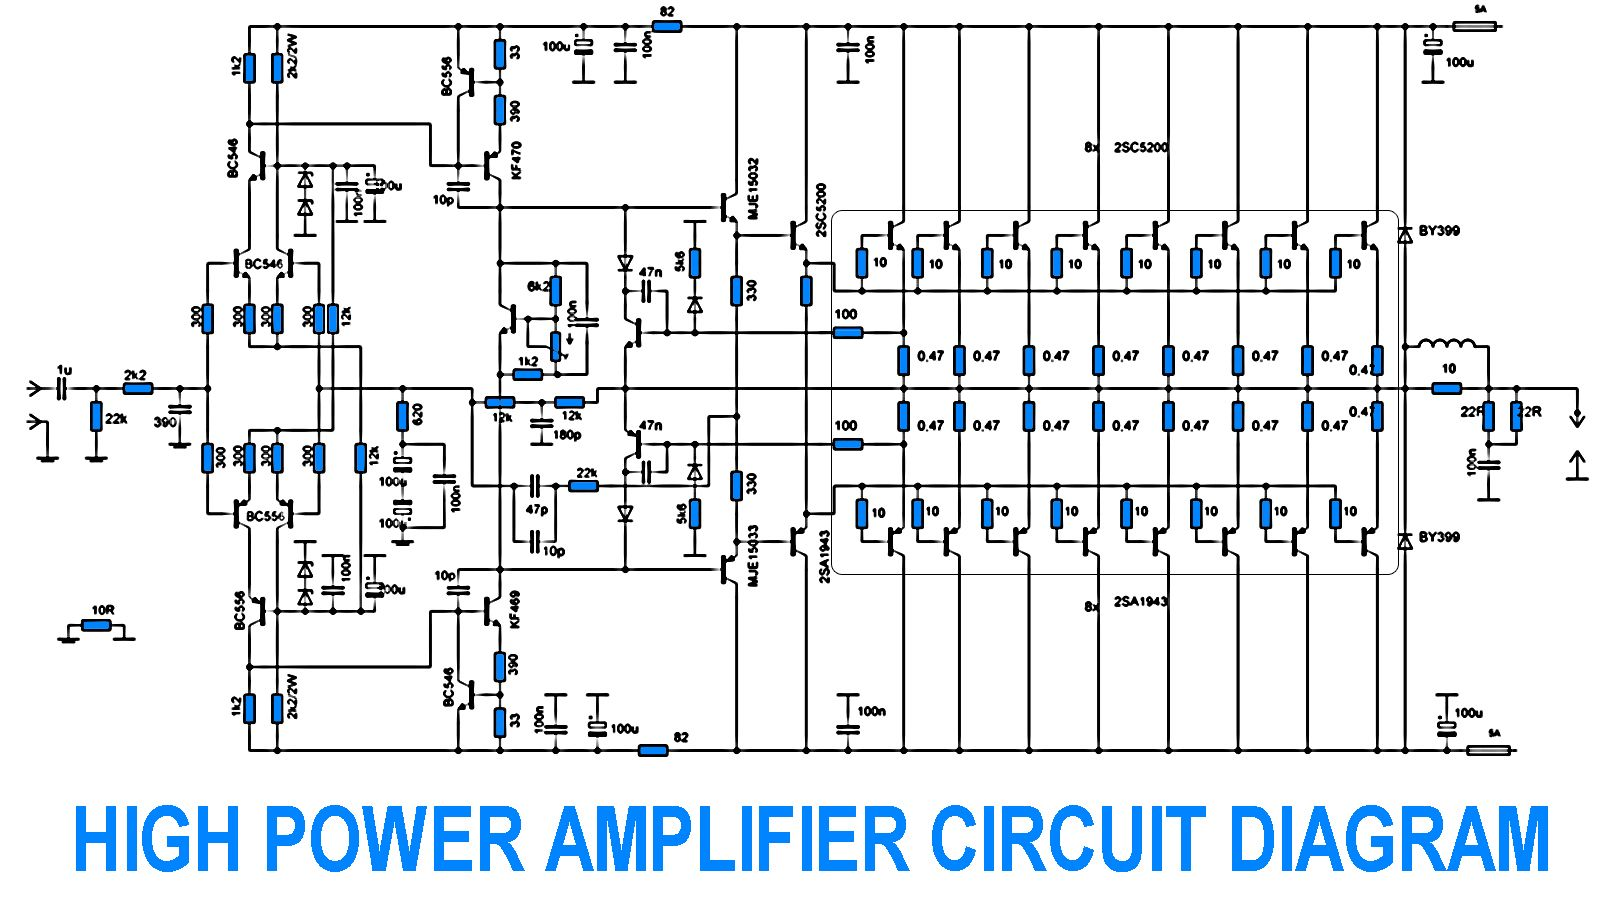 eef36eb807714a12b7a2d48a36c469e5 schematic diagram 500 watts amplifier readingrat net amp power step wiring diagram at gsmx.co